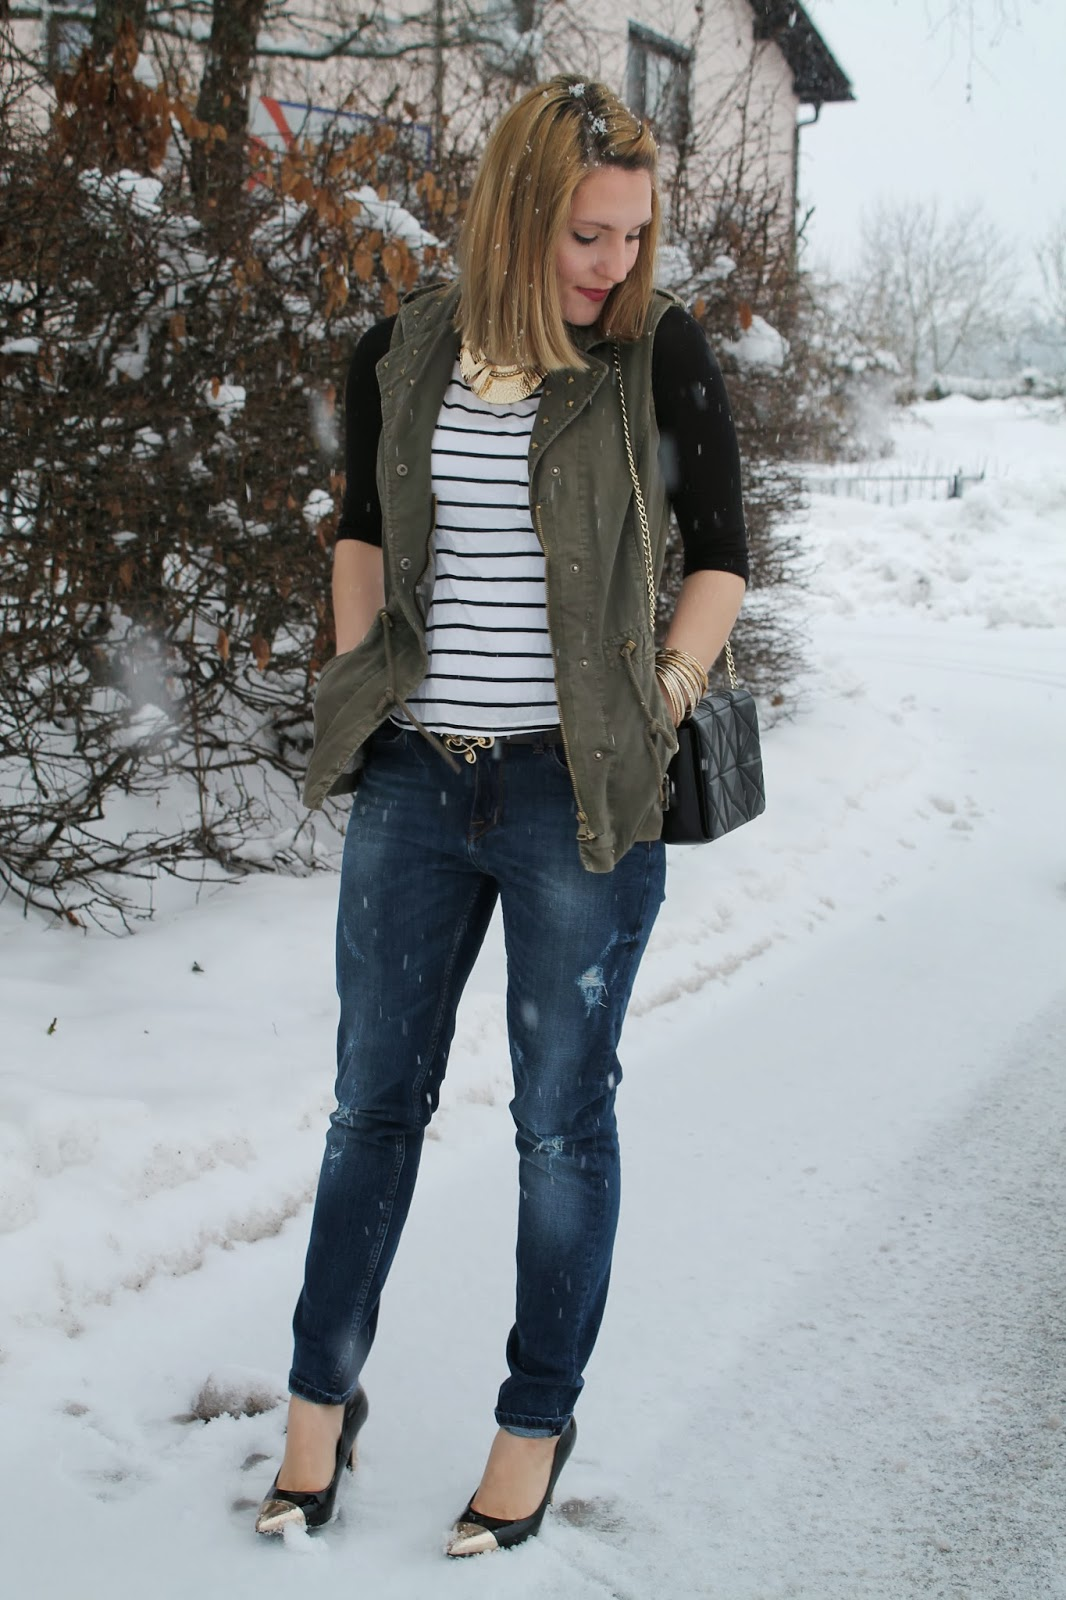 Fashionblogger Austria Österreich Kärnten Carinthia Klagenfurt Winter Style Winter Look Winter Fashion Fashion Even and Odd Takko Zara H&M Stripes Boyfriend Jeand Ann Christine